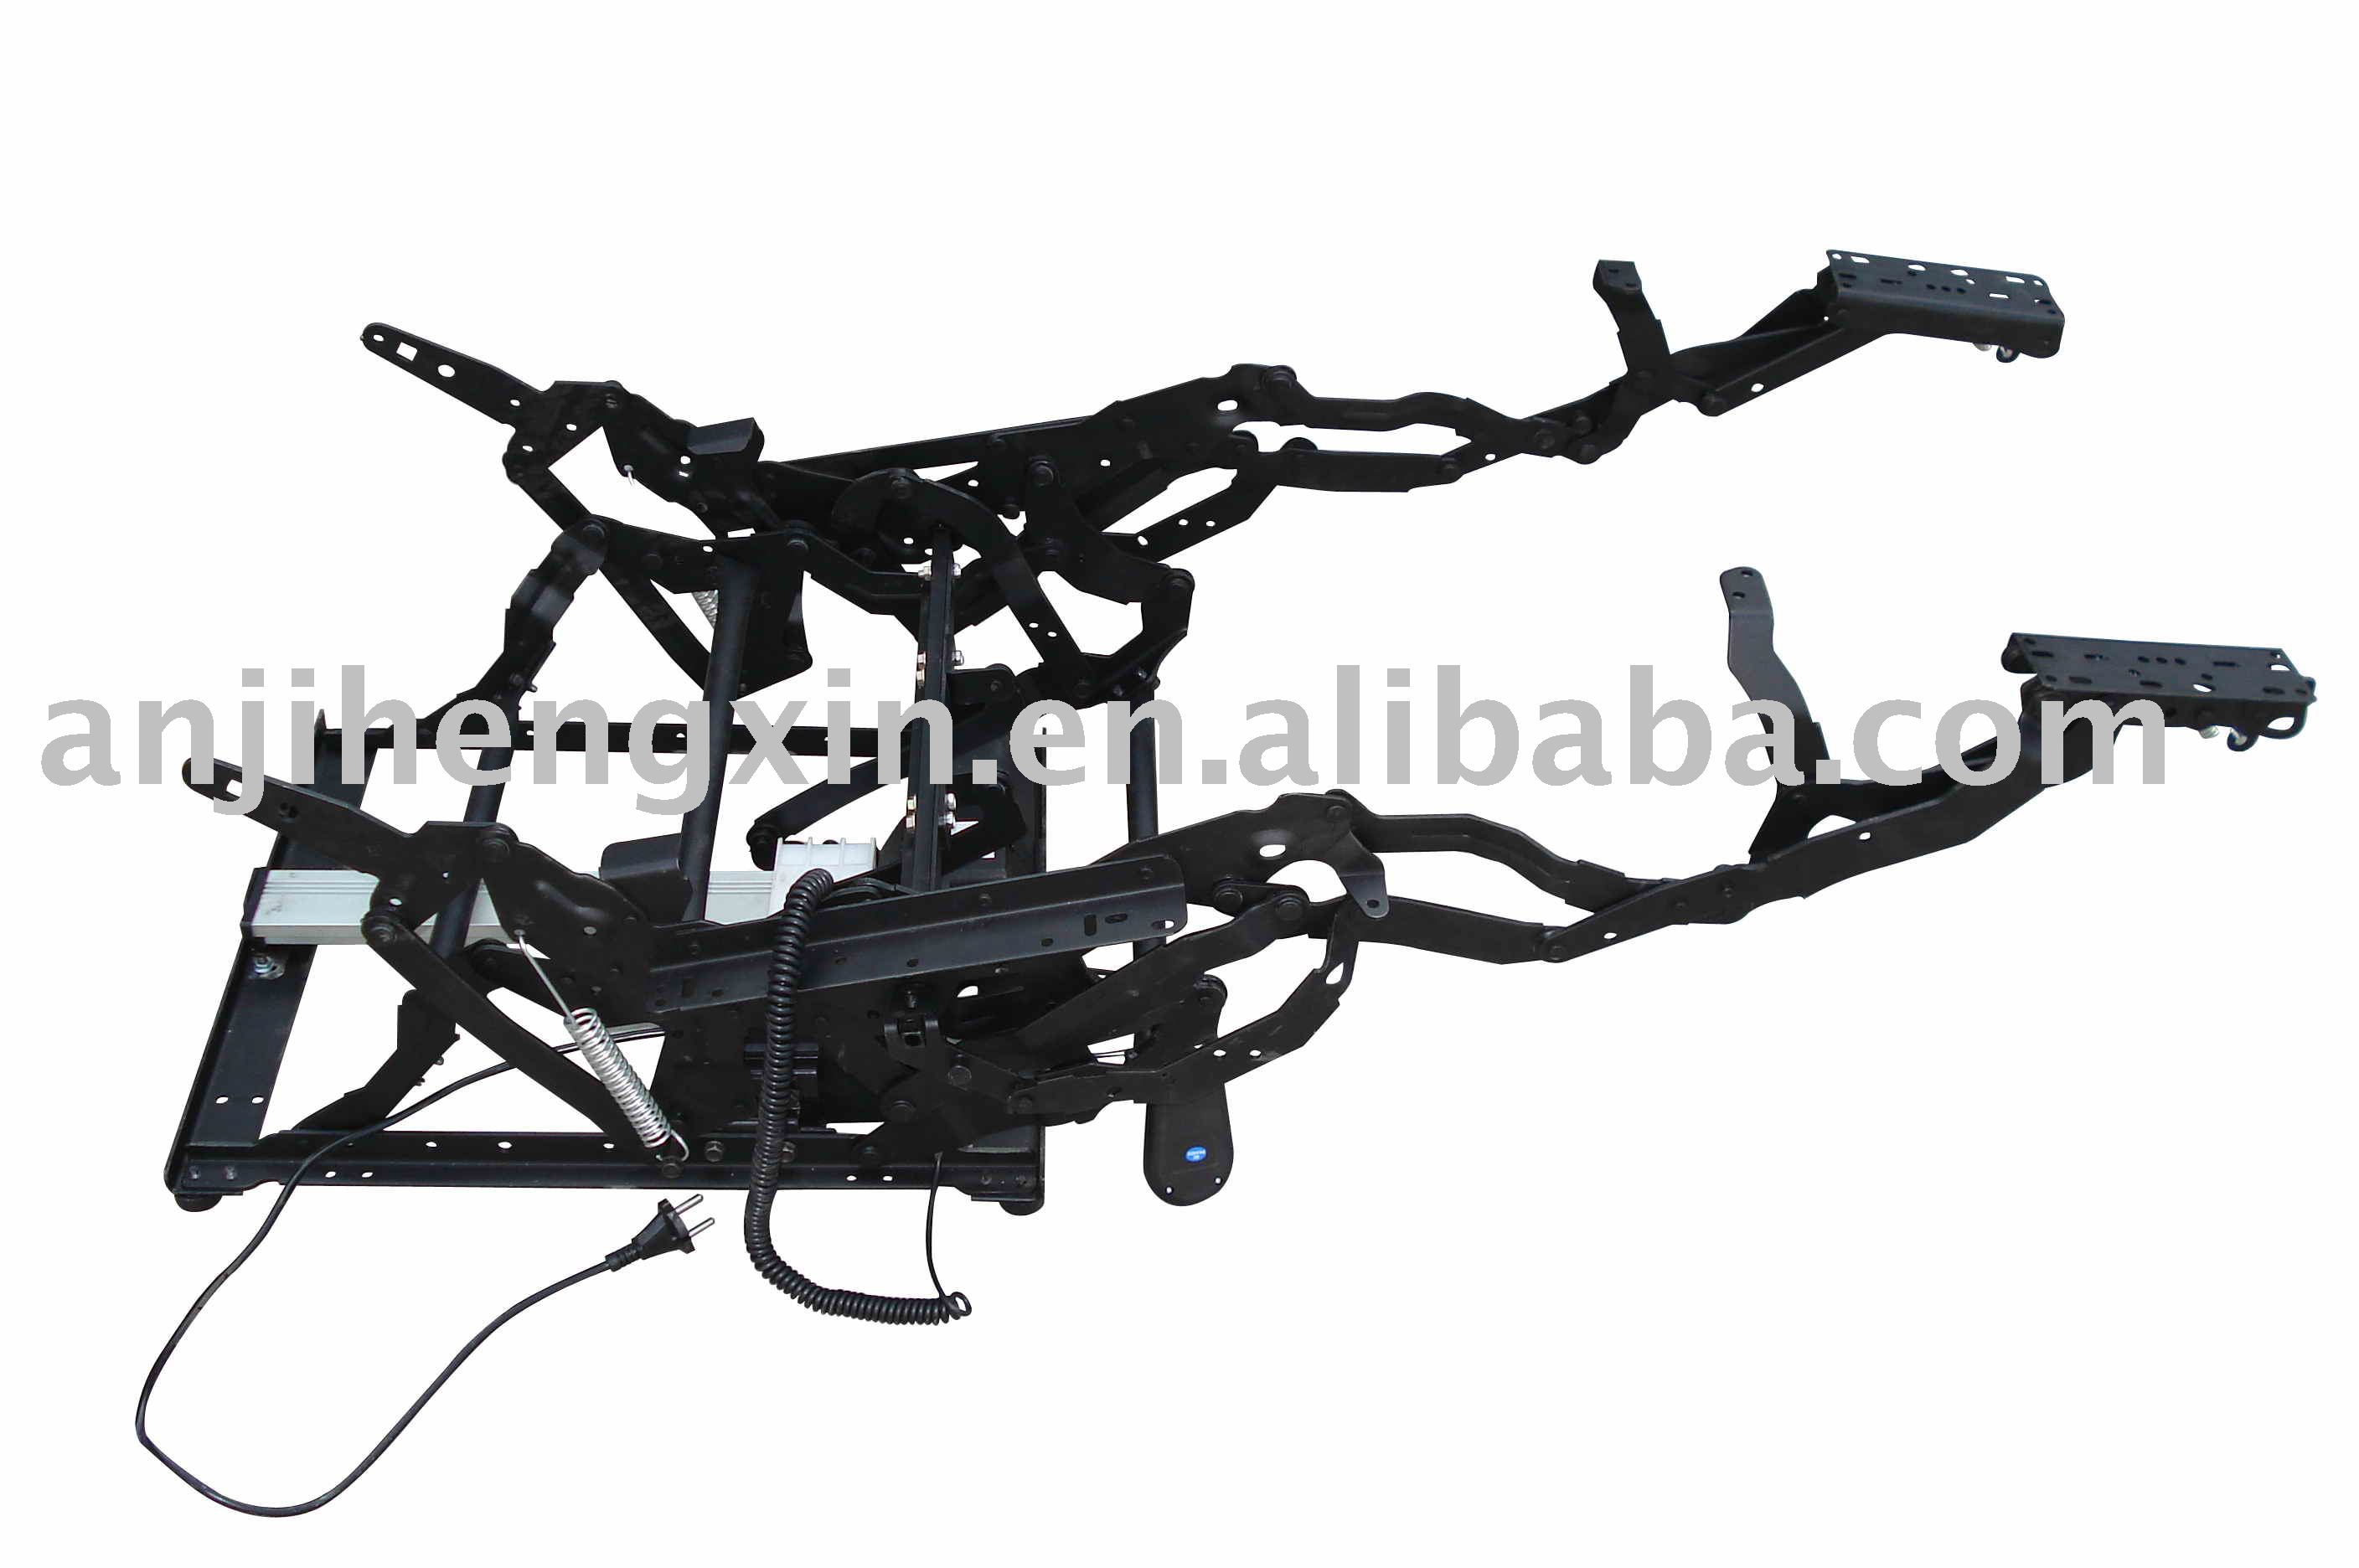 Sofa Recliner Mechanism Sofa Recliner Mechanism Suppliers and Manufacturers at Alibaba.com  sc 1 st  Alibaba & Sofa Recliner Mechanism Sofa Recliner Mechanism Suppliers and ... islam-shia.org